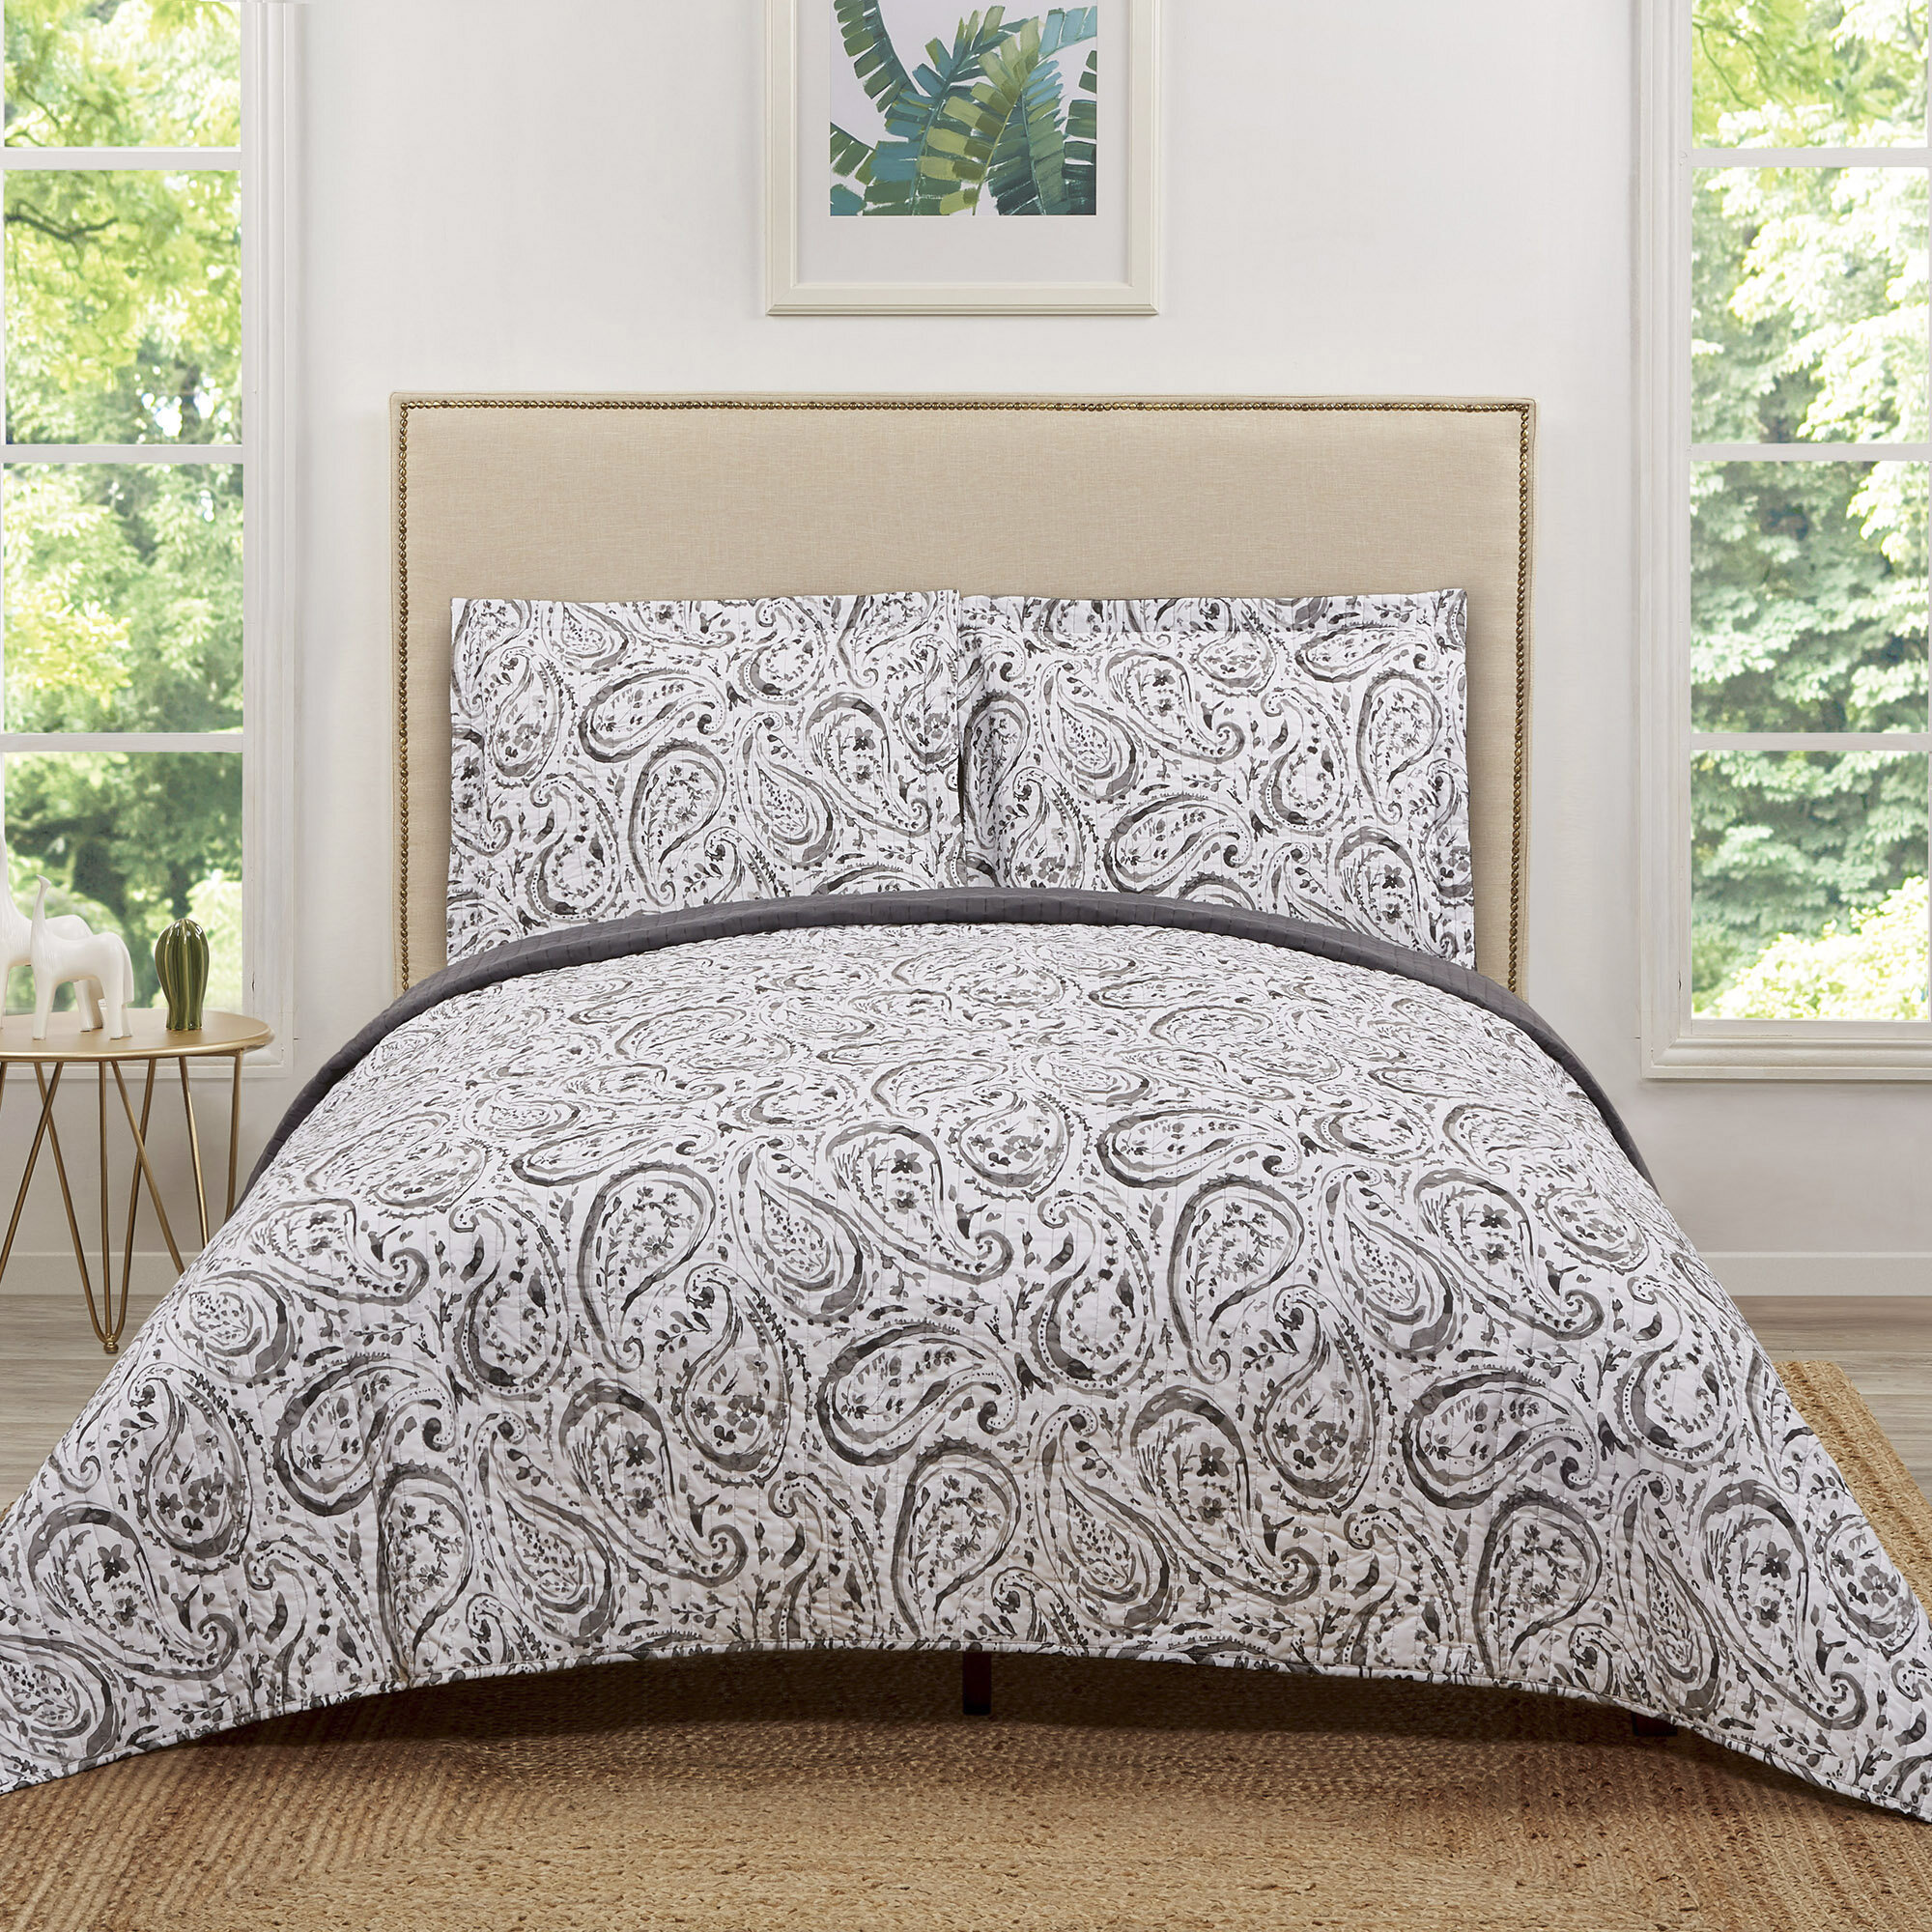 bag bedding new pom paisley size cover itm a duvet bed set formula in comforter sheets queen